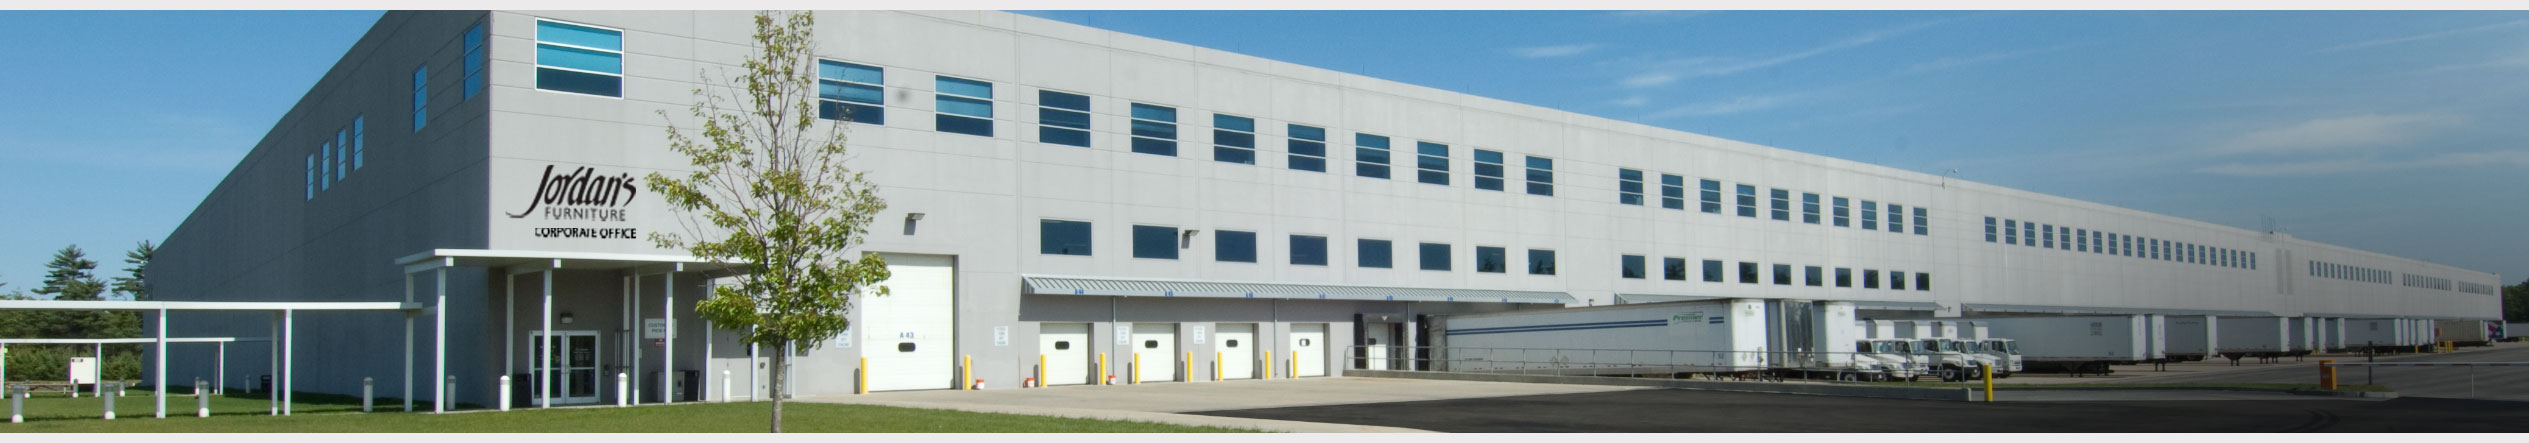 Jordan's Furniture Corporate Offices and Distribution Center in East Taunton, MA